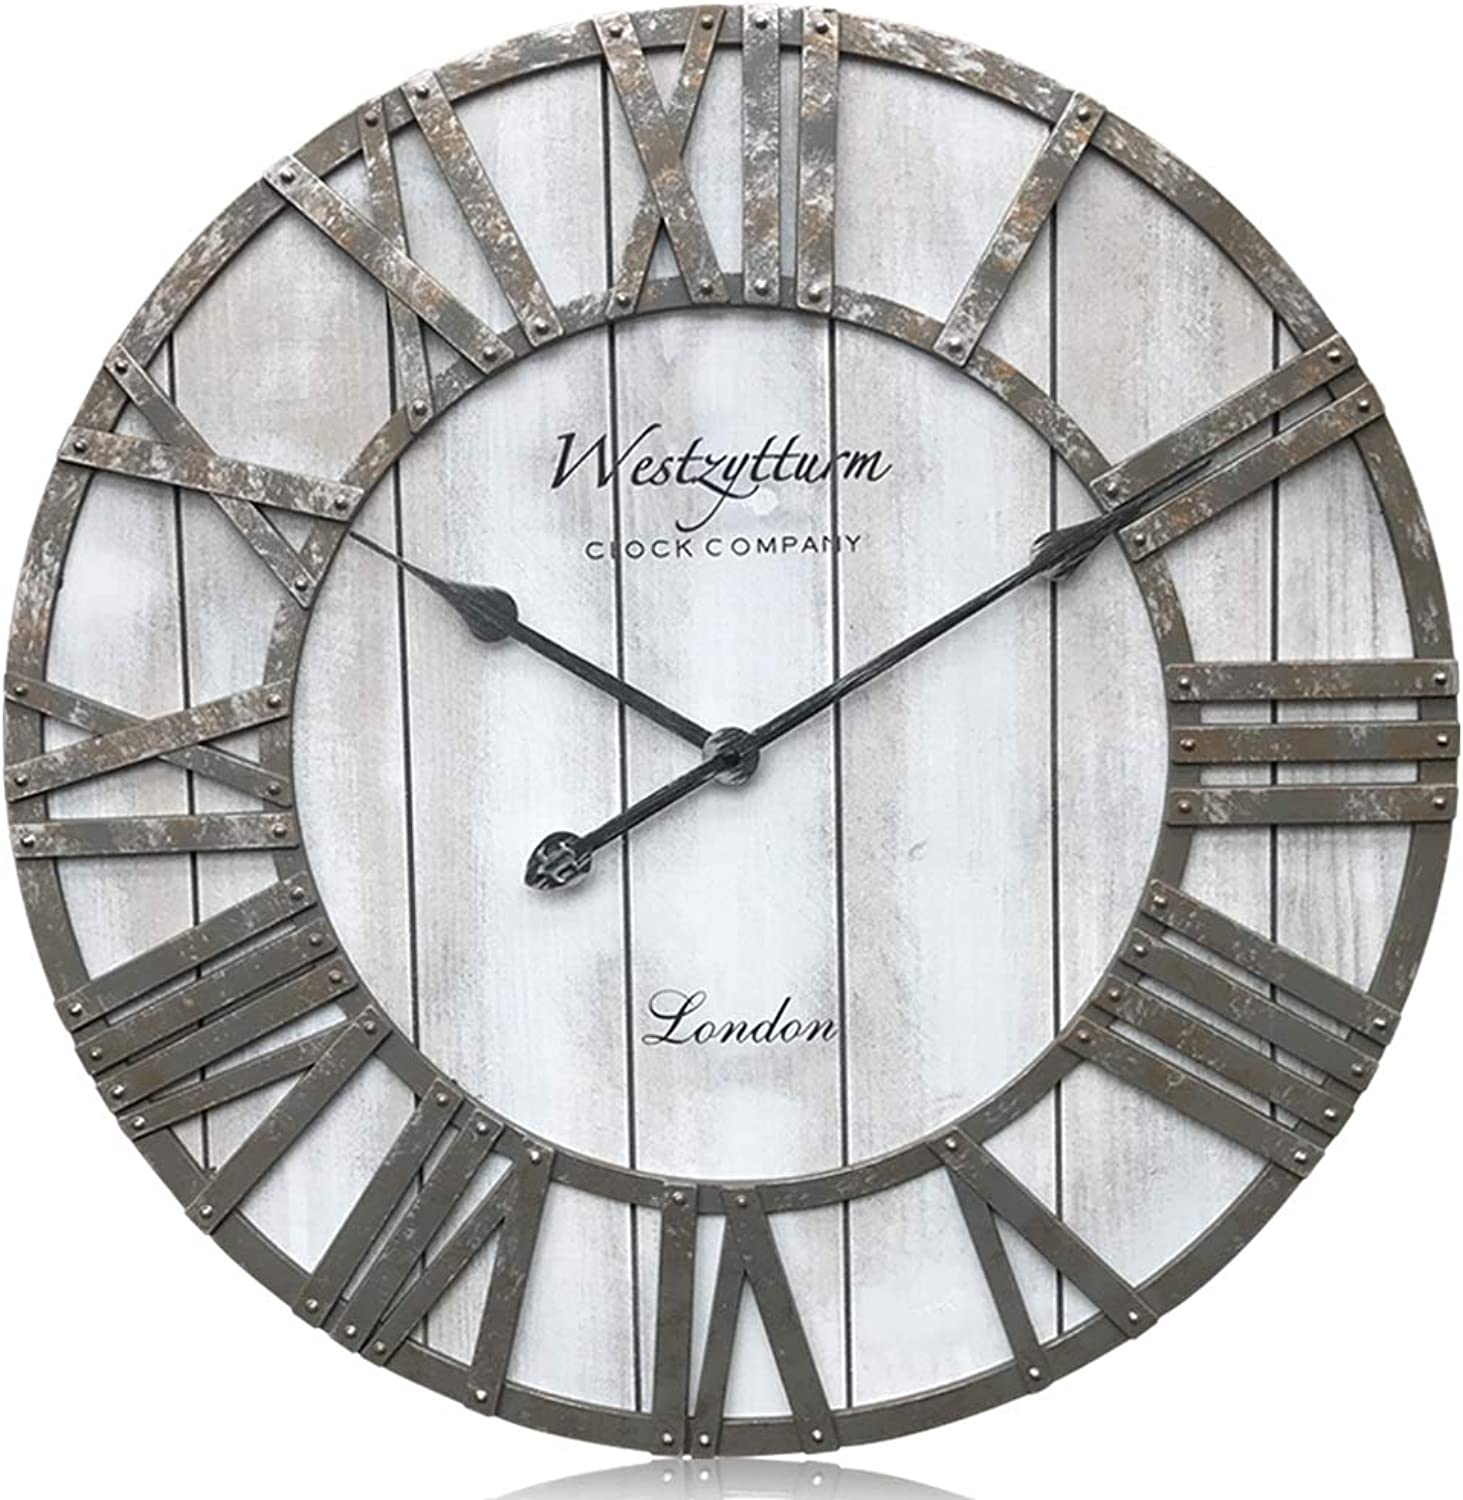 Westzytturm Wooden Wall Clock Battery Operated Non Ticking Quartz Movement Silent Retro Metal Hands Round Wood Rustic Large Clocks for Living room Decor Antique Office Beach Mantel(Grey, 24 inch)